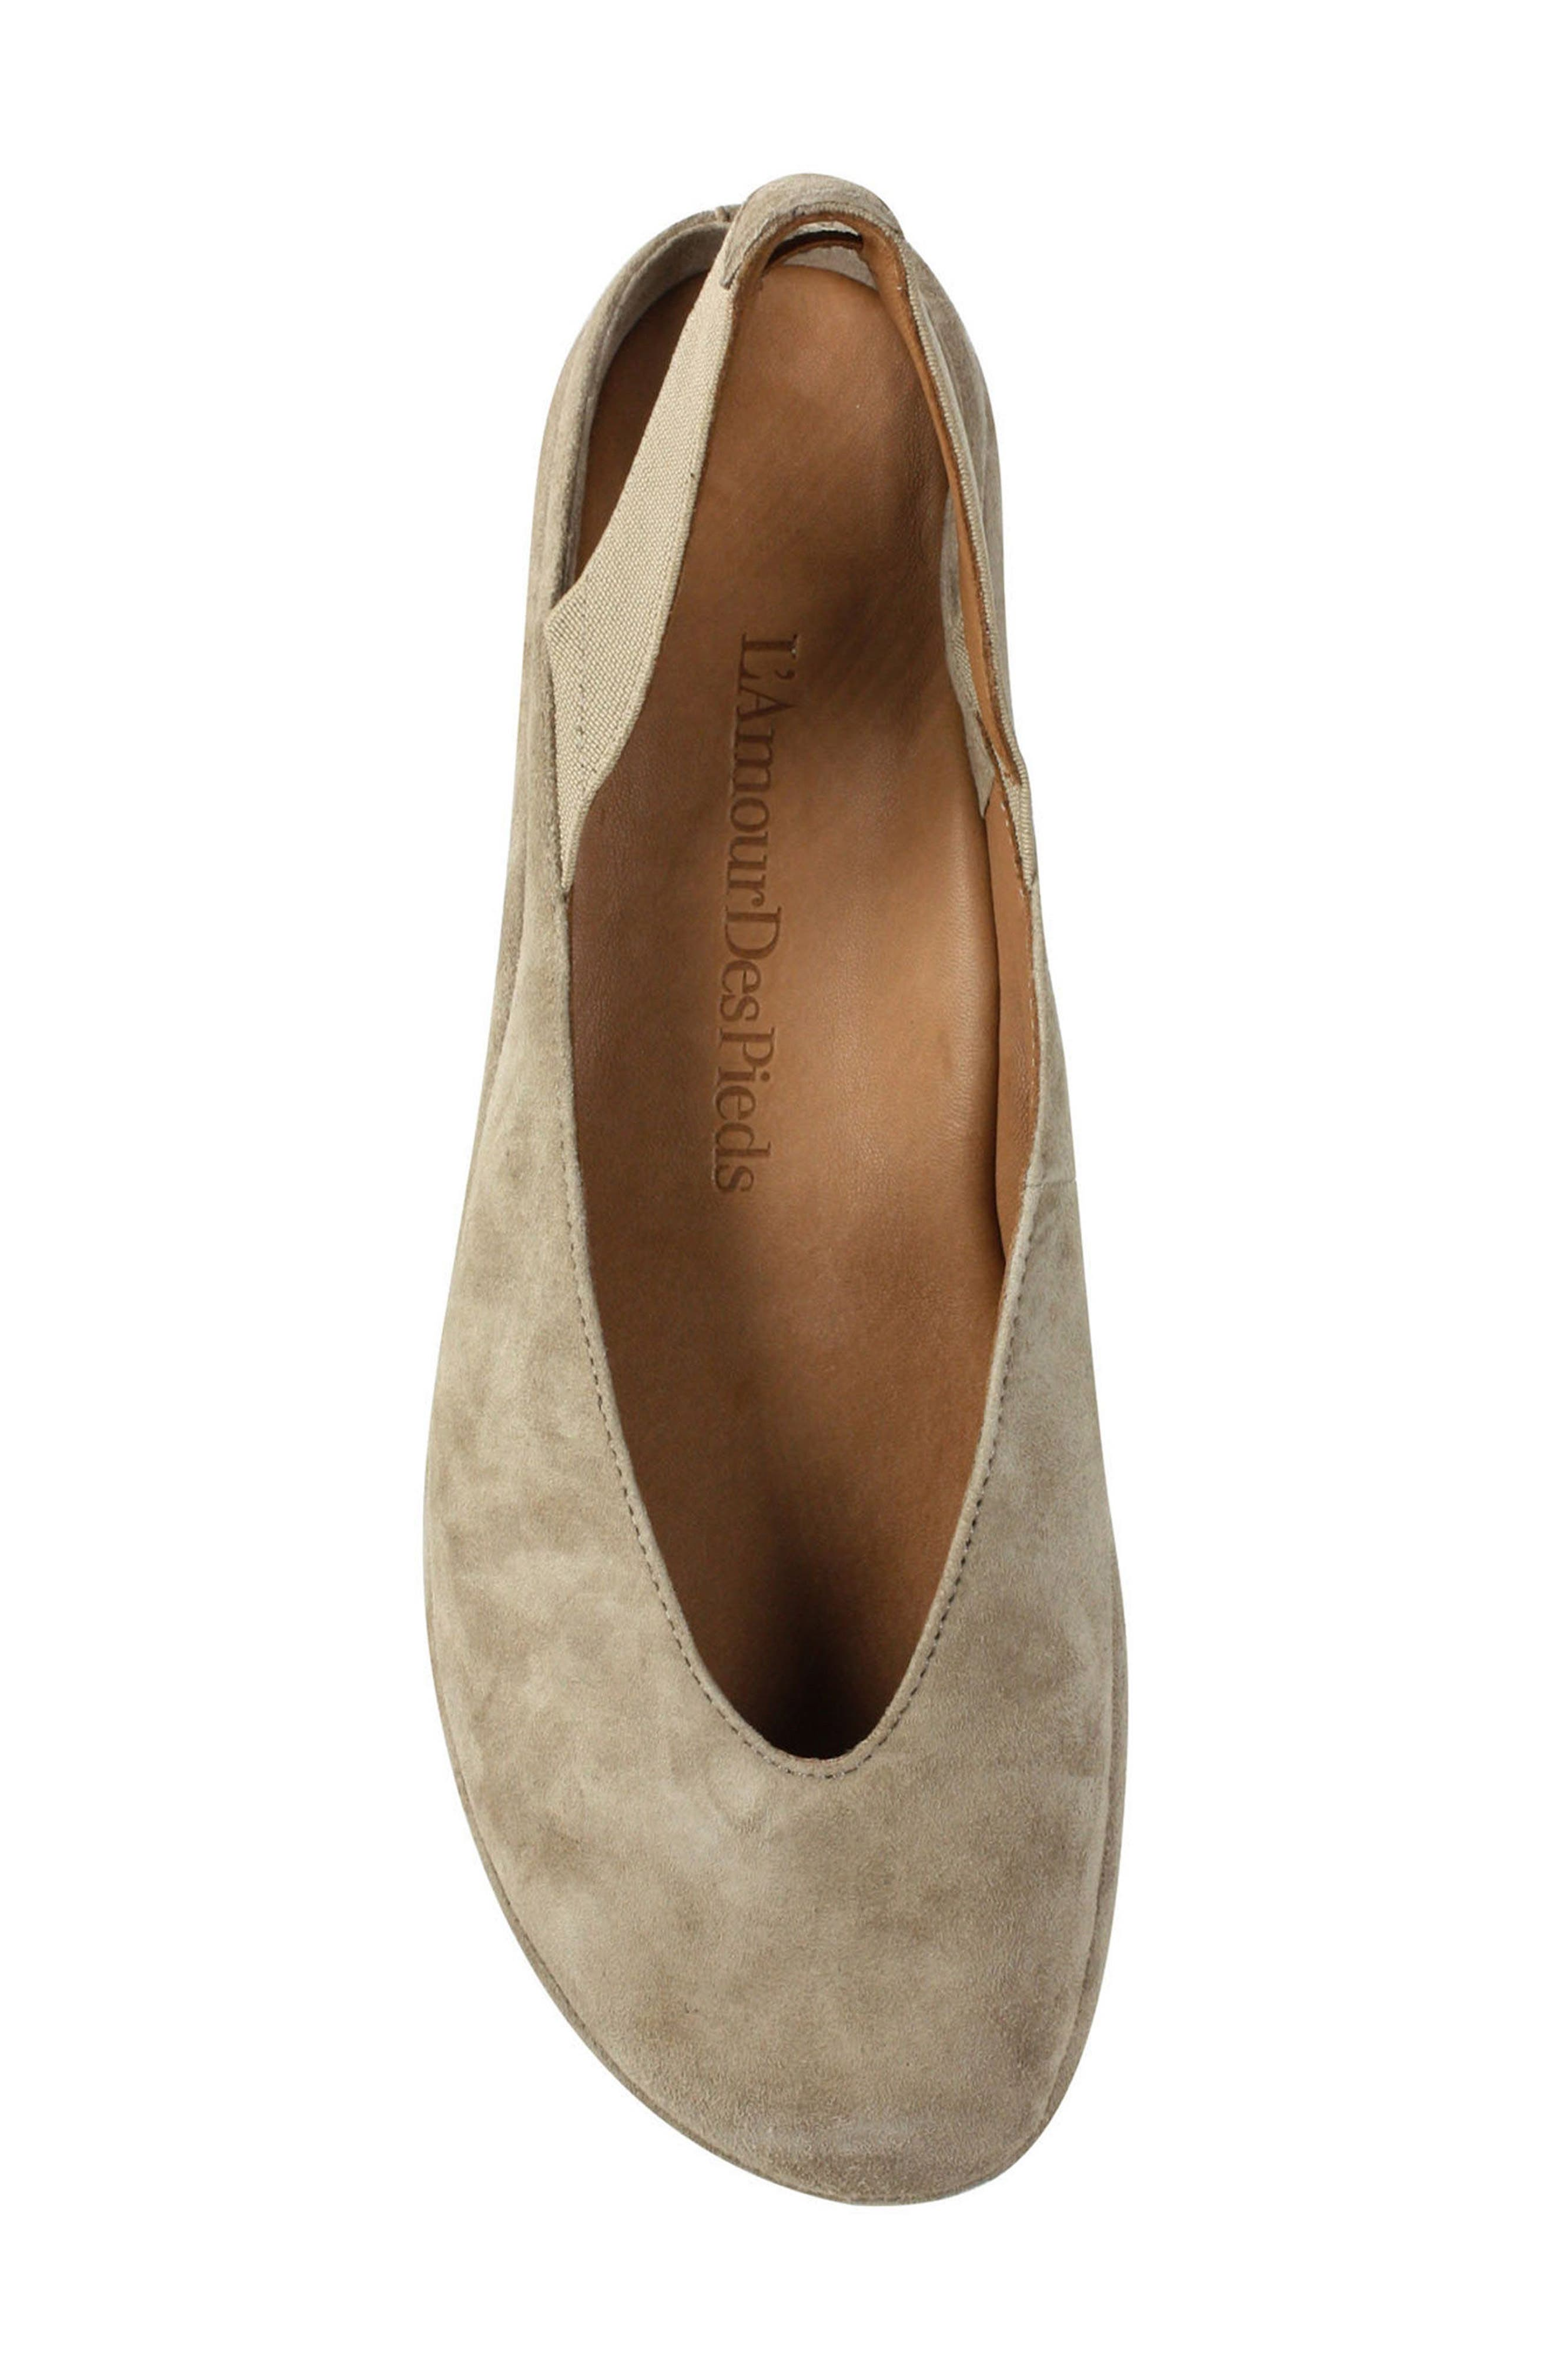 L'AMOUR DES PIEDS, 'Cypris' Slingback Wedge, Alternate thumbnail 3, color, TAUPE SUEDE